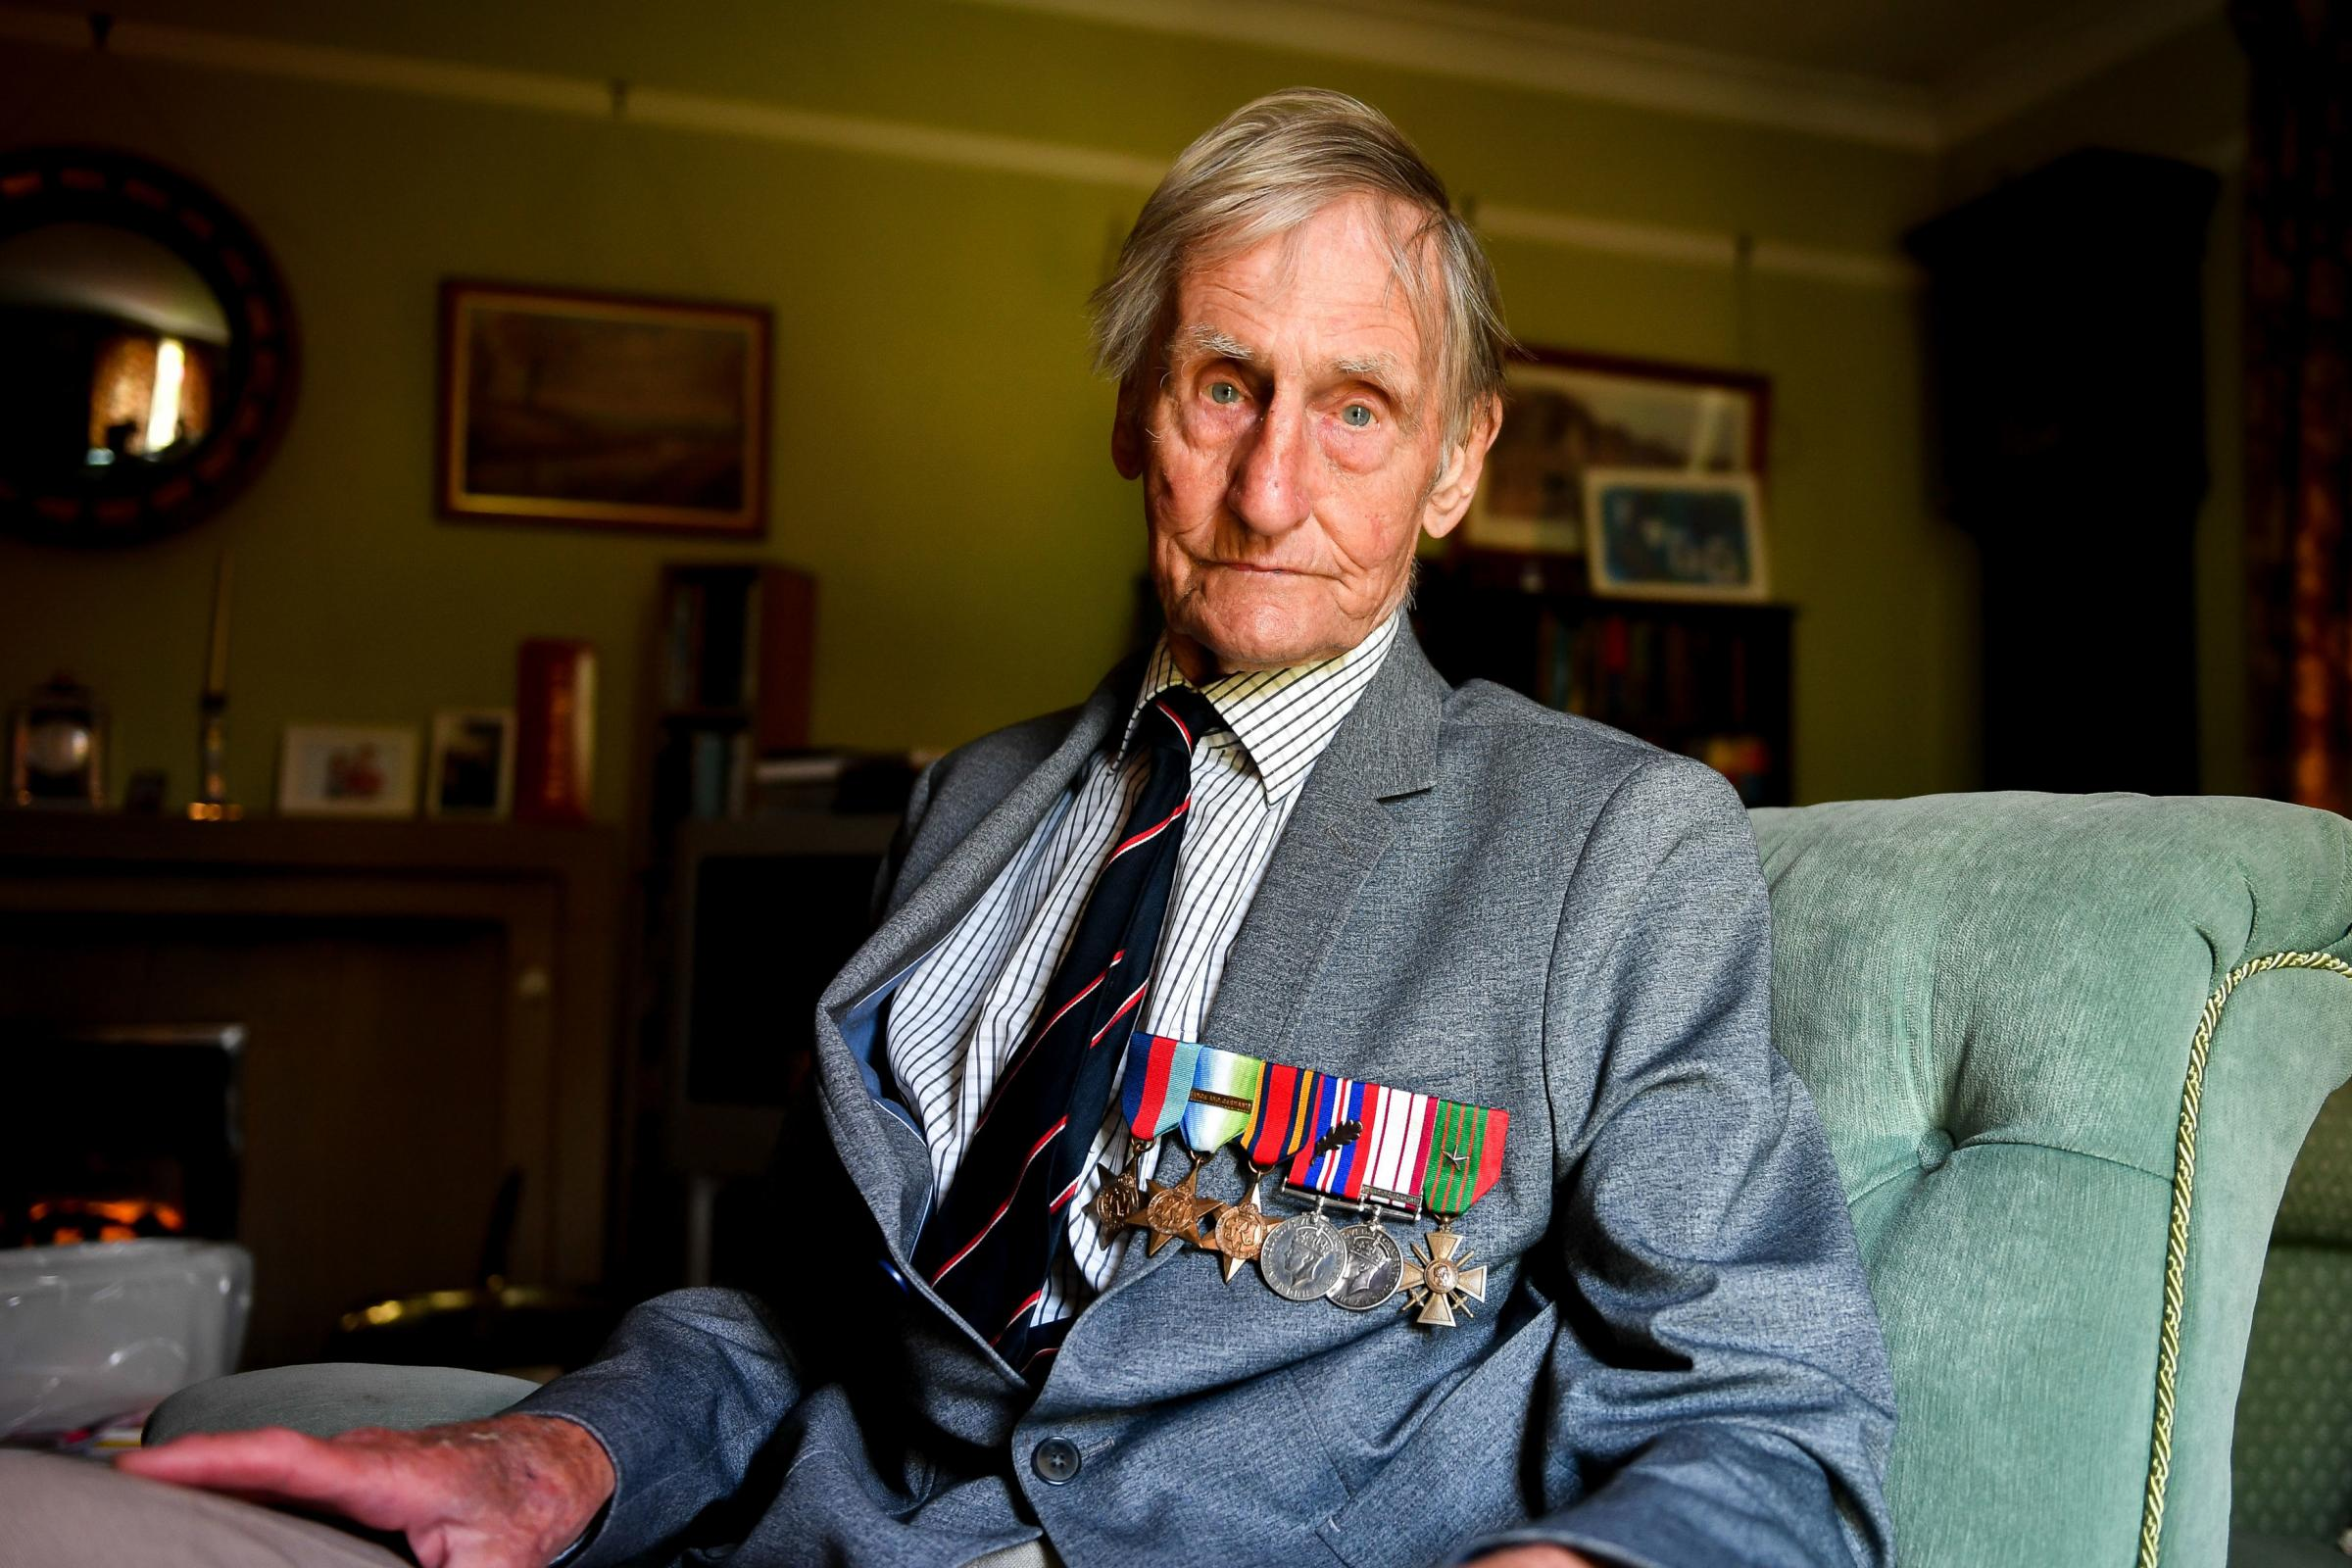 ATTACKED: Taunton war veteran Jim Booth, 96. PICTURE: Ben Birchall/PA Wire